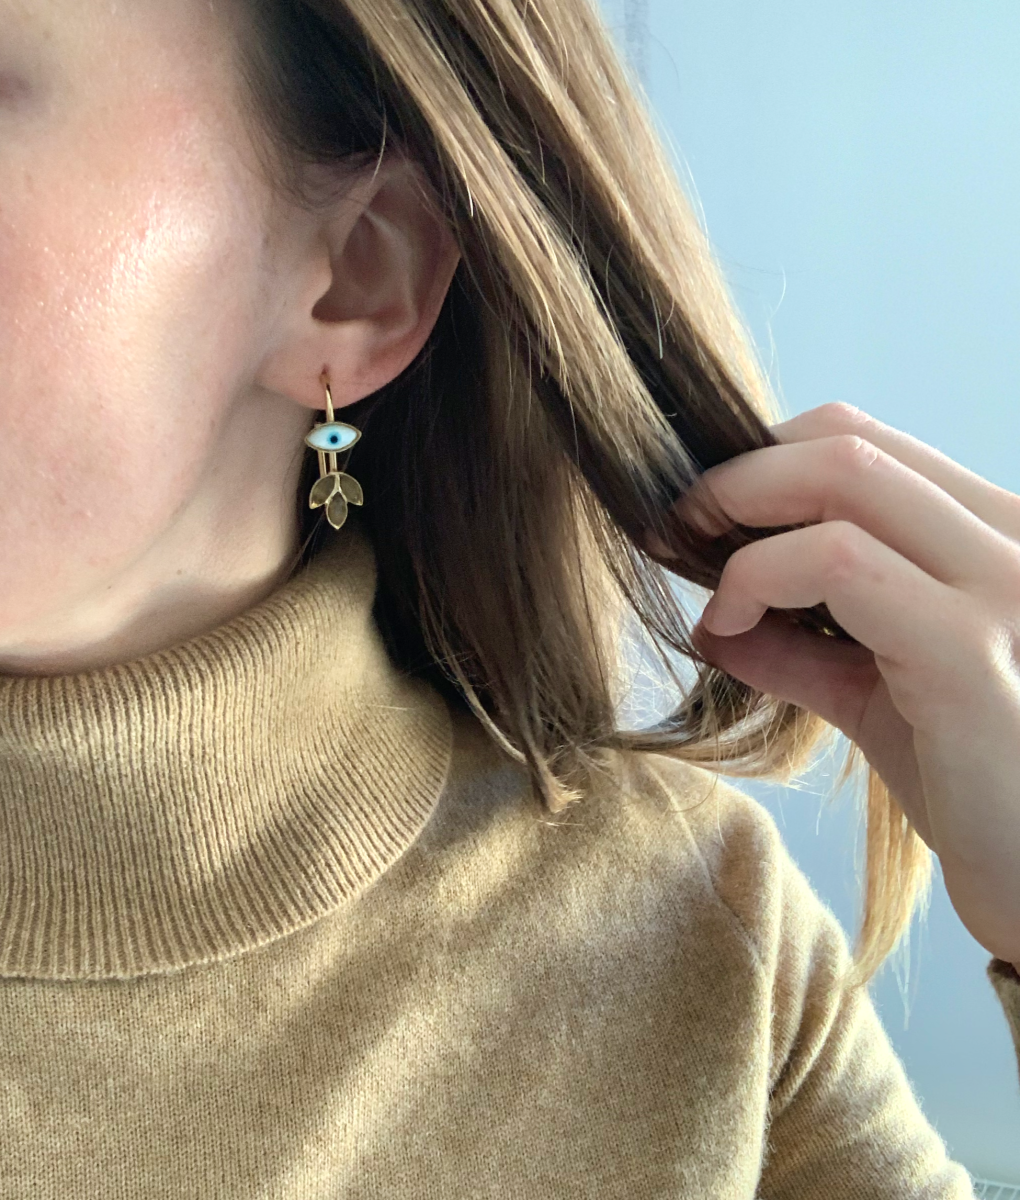 I purchased these earrings from my favorite jewelry store, Medecine Douce, as a souvenir to remember the trip by! The highlighter on my cheek is also a favorite: Champagne Rose Luminizer from RMS